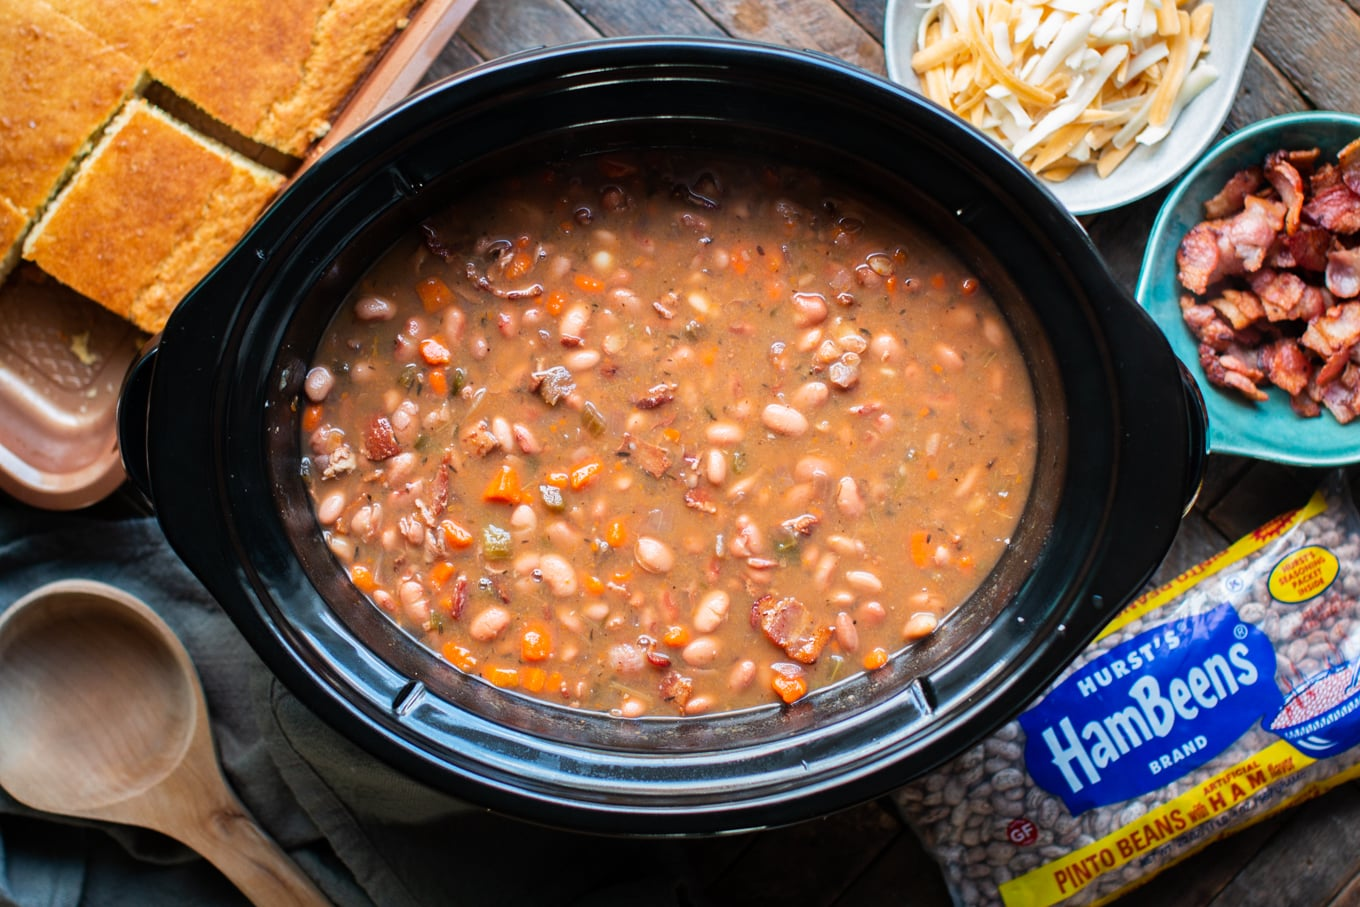 pinto beans and bacon cooked in slow cooker with cheese and cornbread.